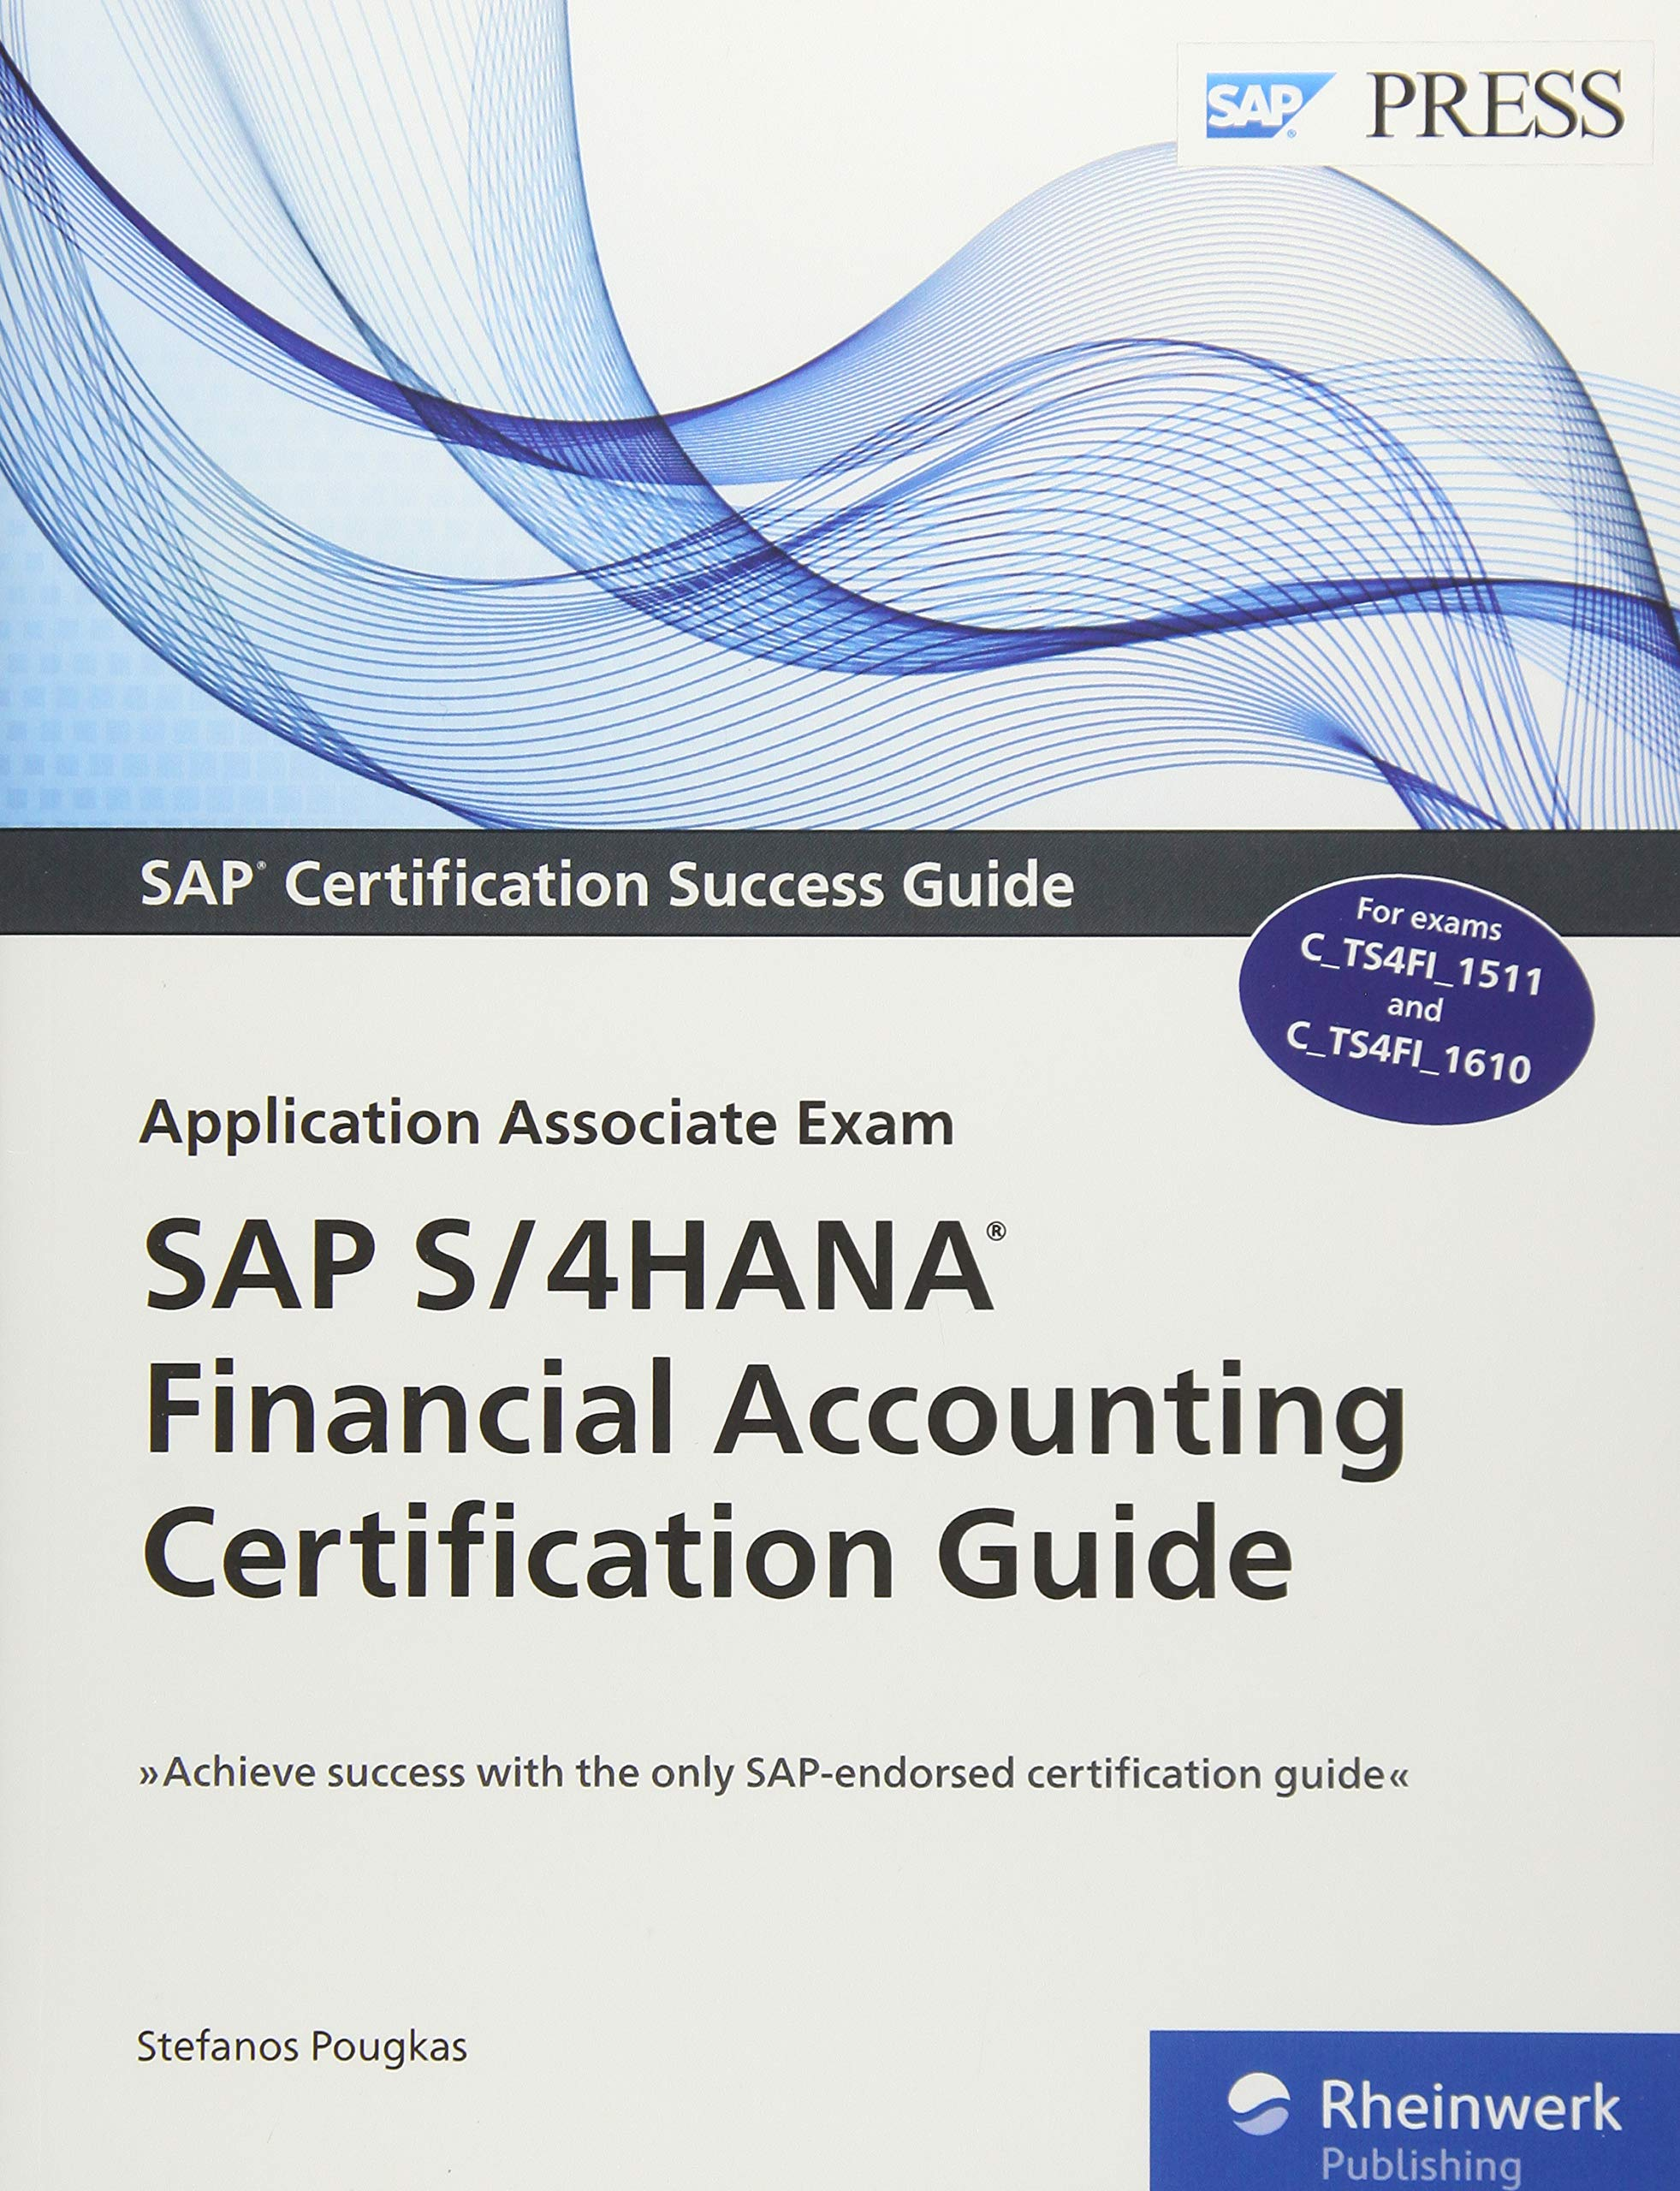 Sap S4hana Financial Accounting Certification Guide Application